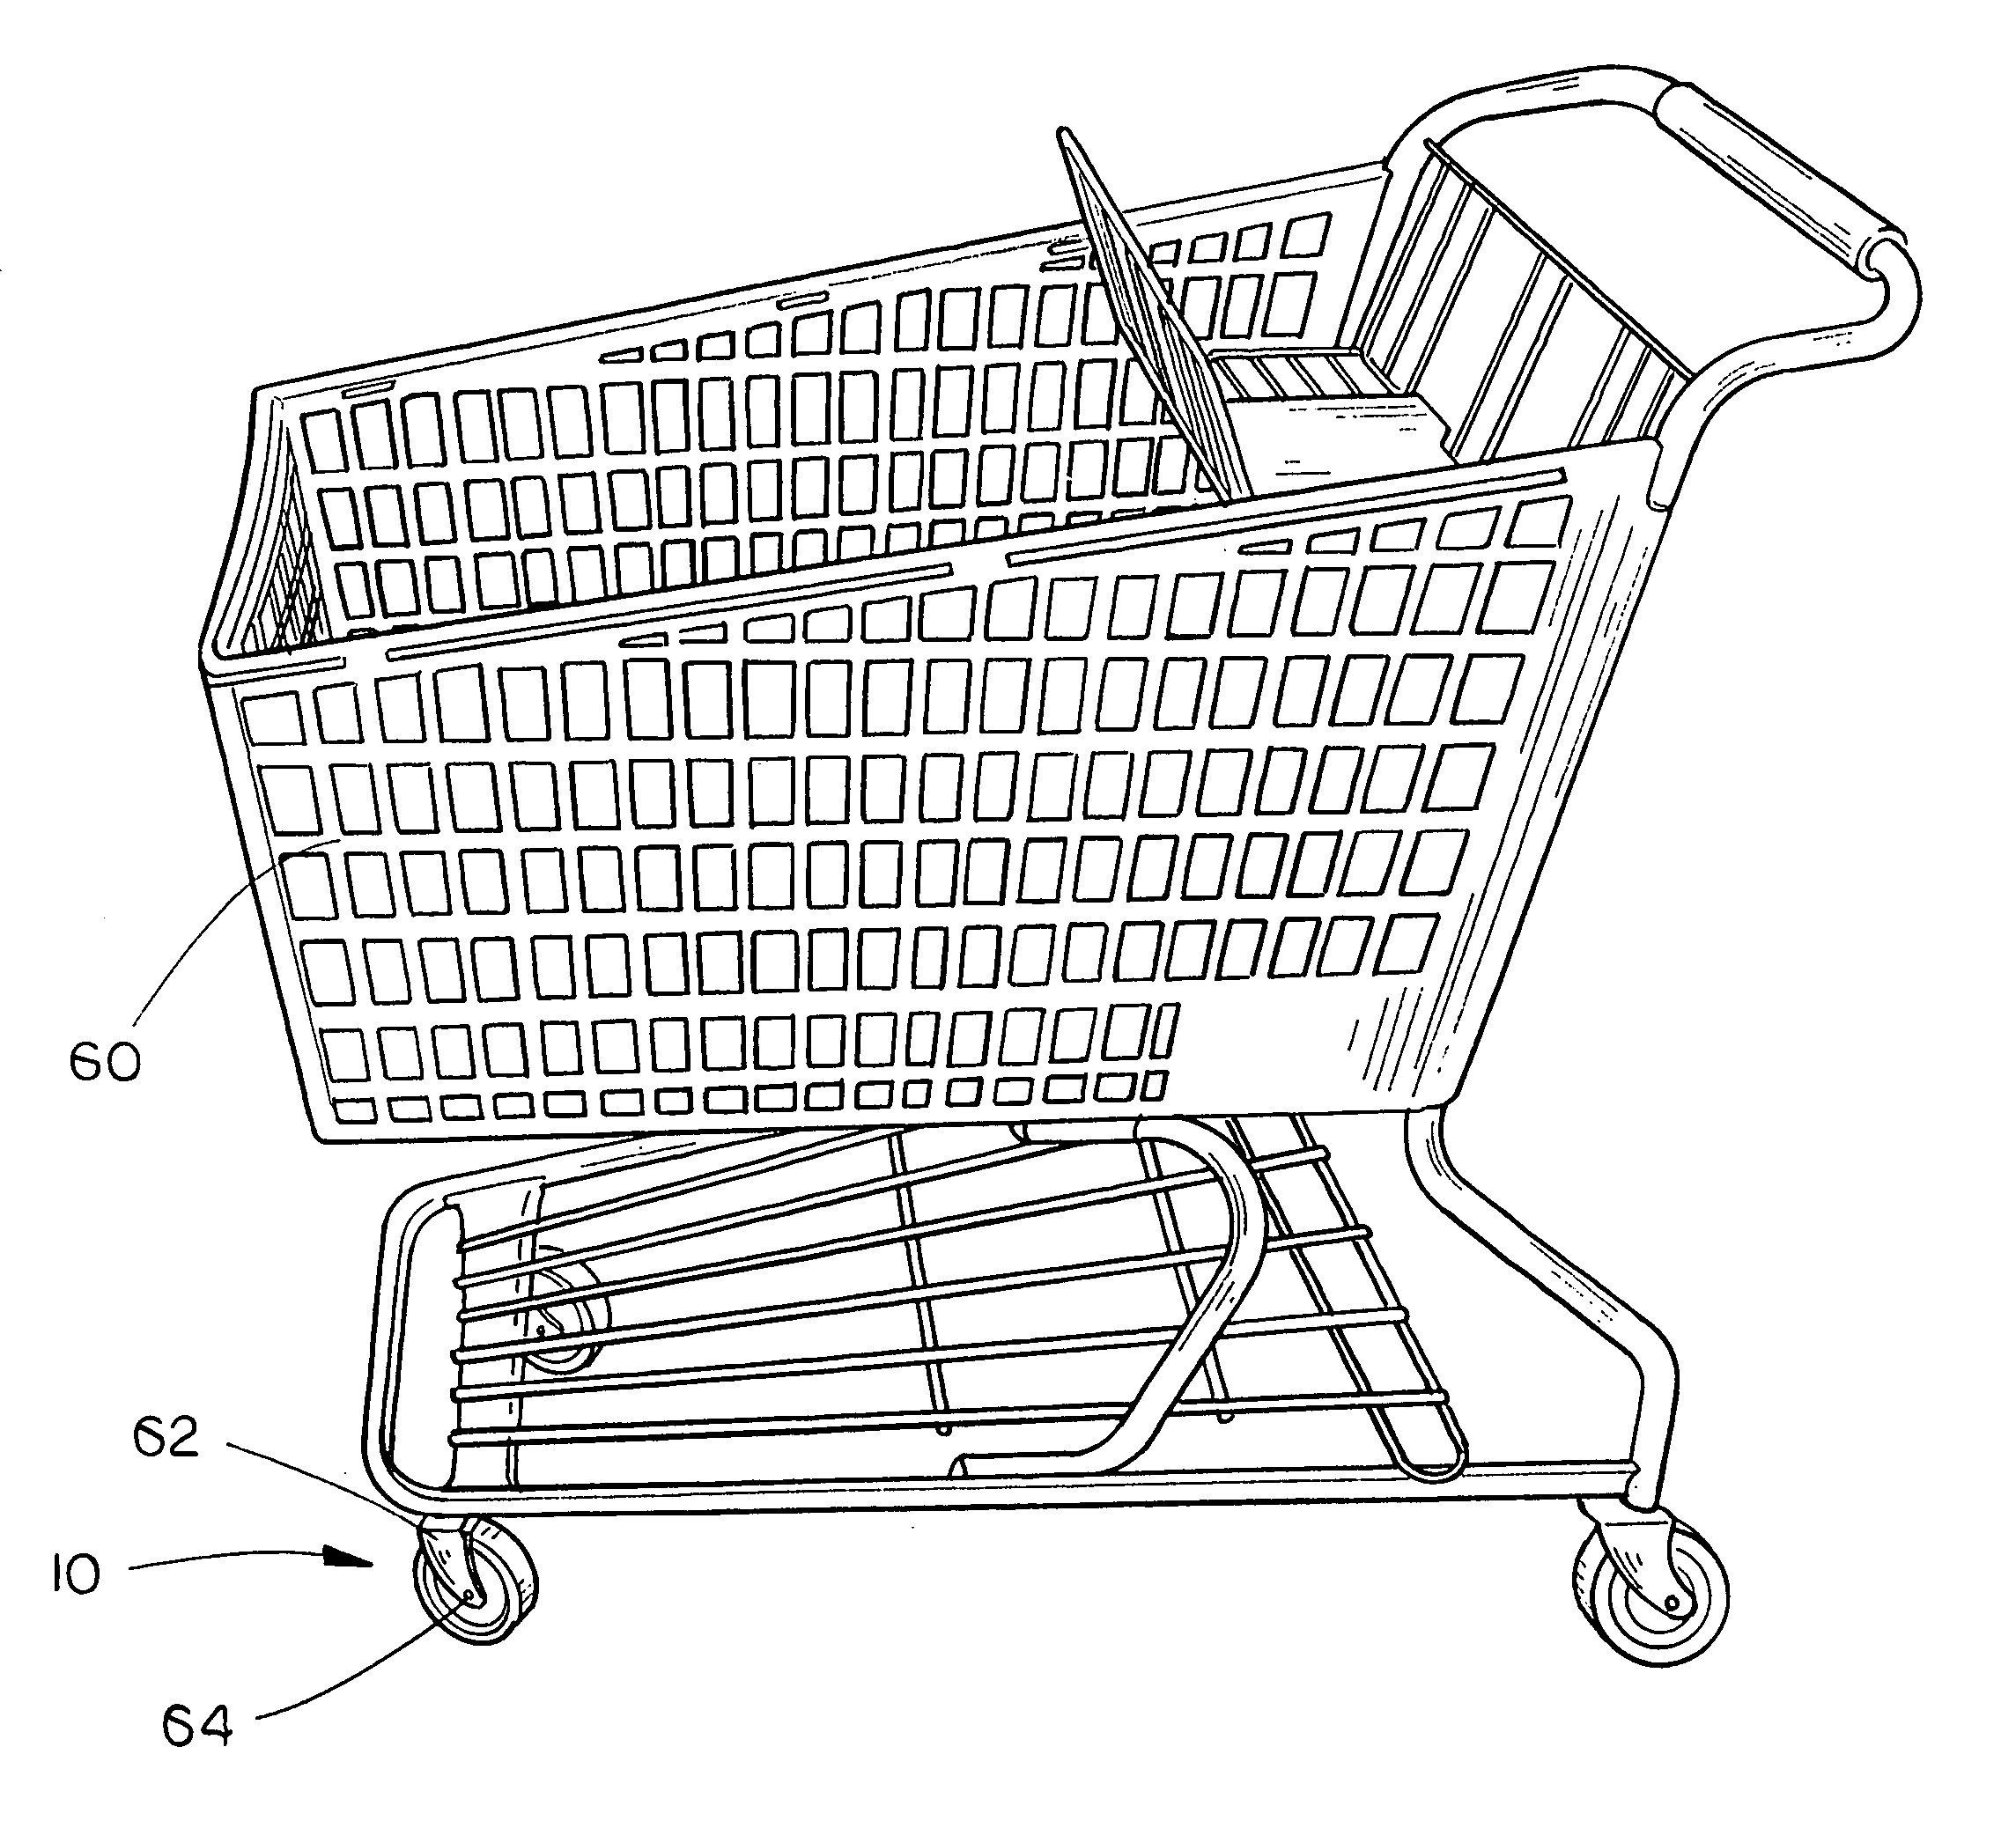 This is an image of Terrible Shopping Cart Drawing